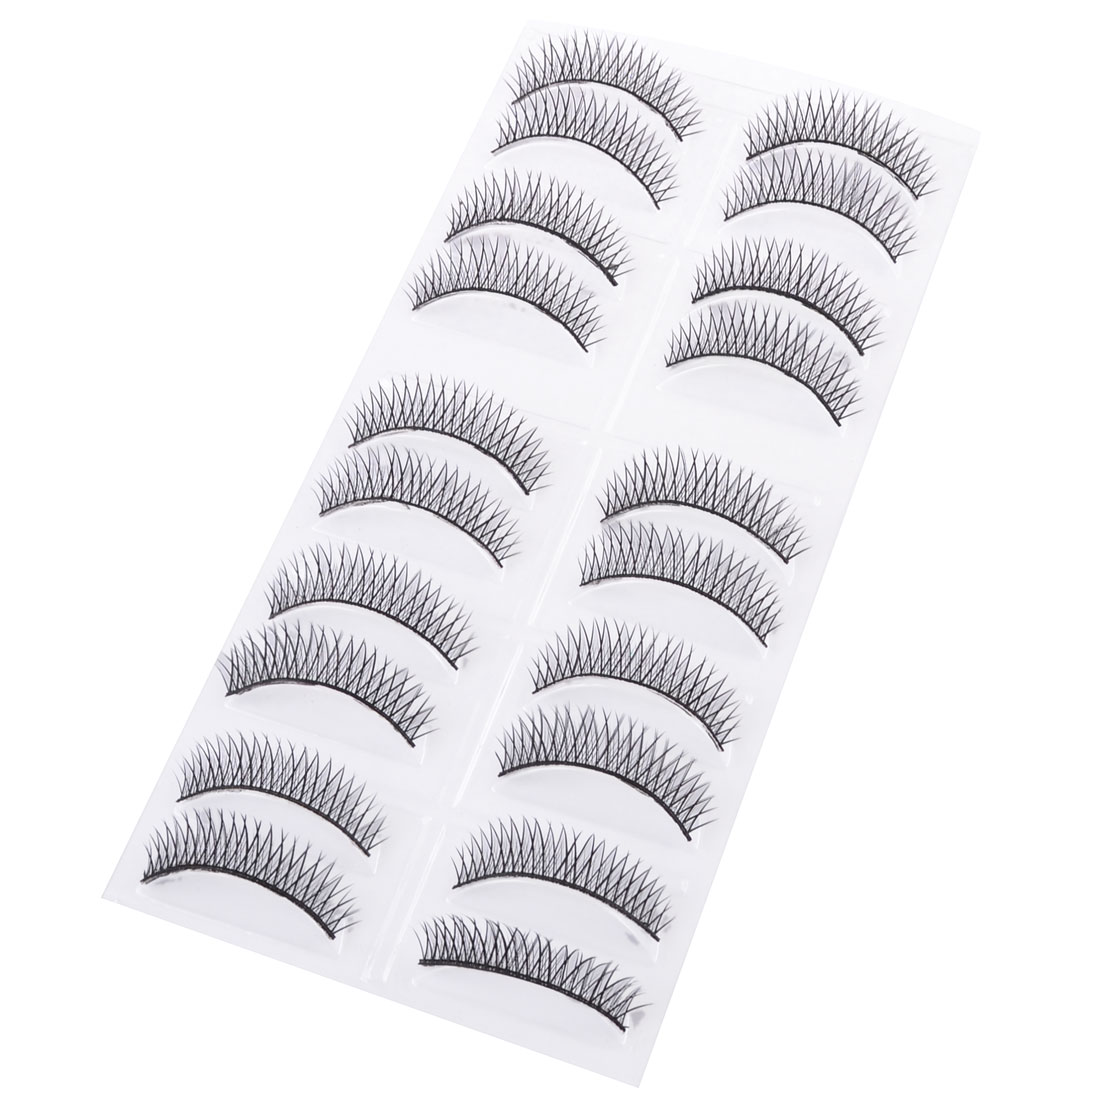 Girl Eye Beauty Cosmetic Thick Long Curly Fake Eyelashes Black 20 in 1